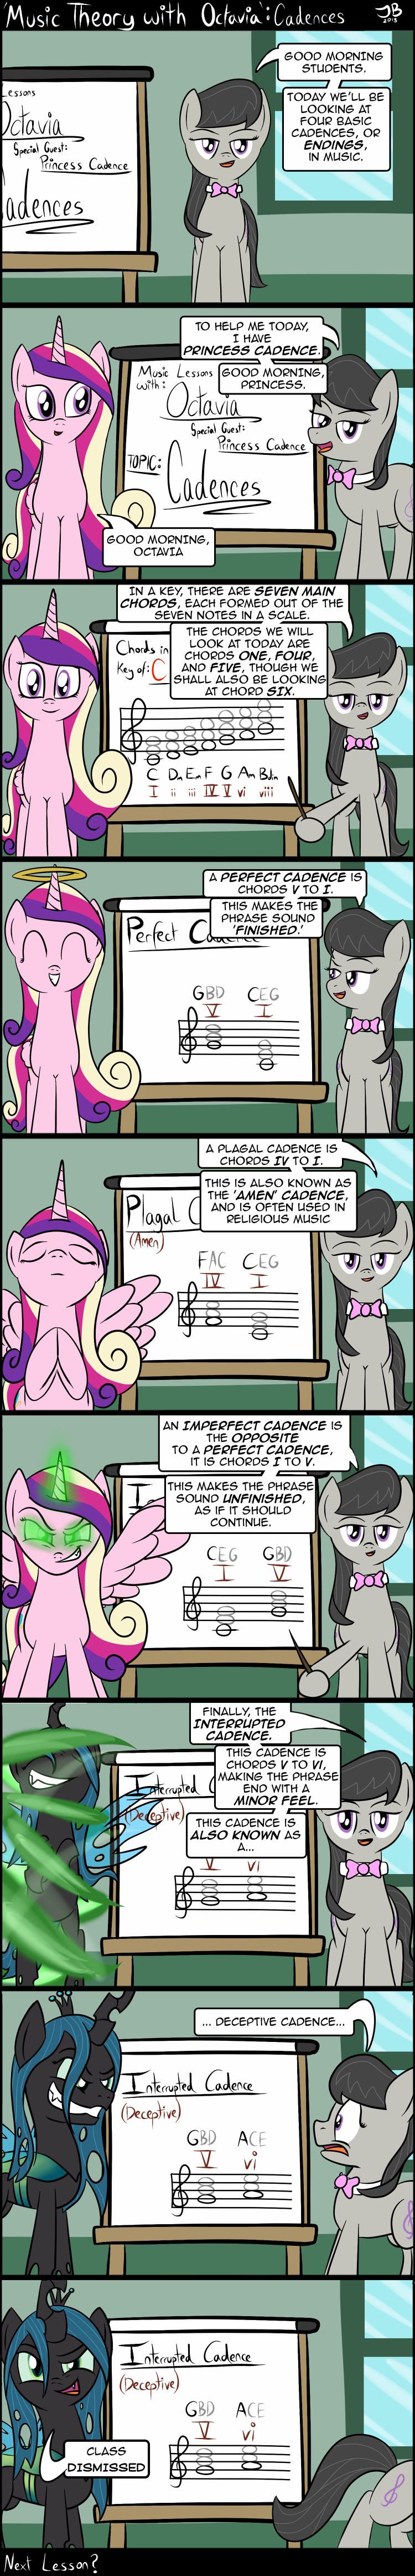 Music Theory with Octavia: Cadences by ReakkorShrike